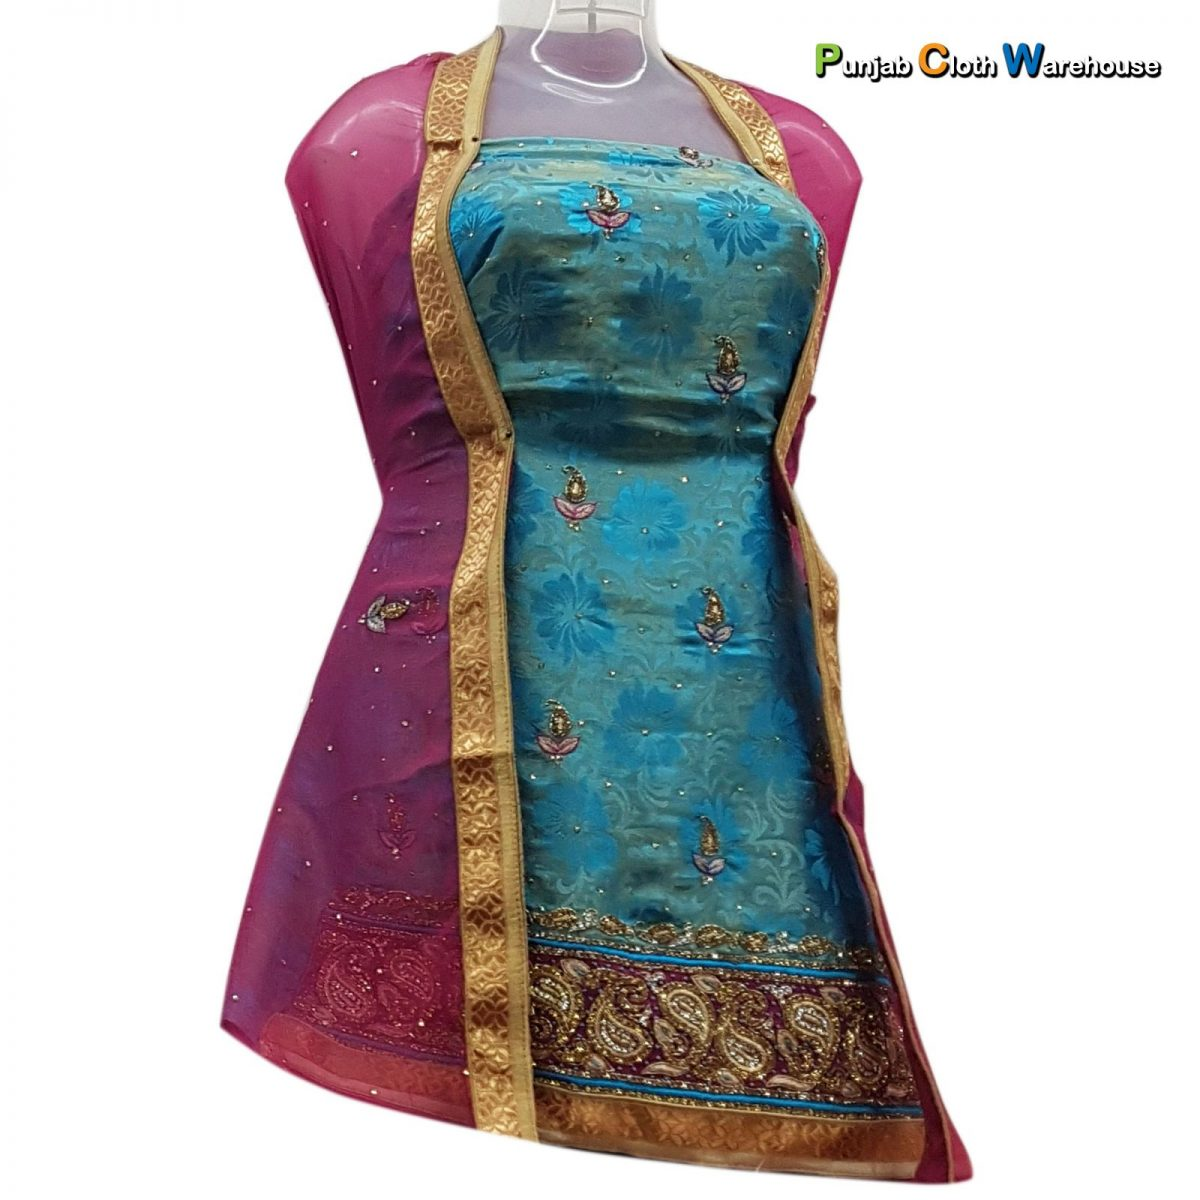 Ladies Suits - Cut Piece - Punjab Cloth Warehouse, Surrey (11)